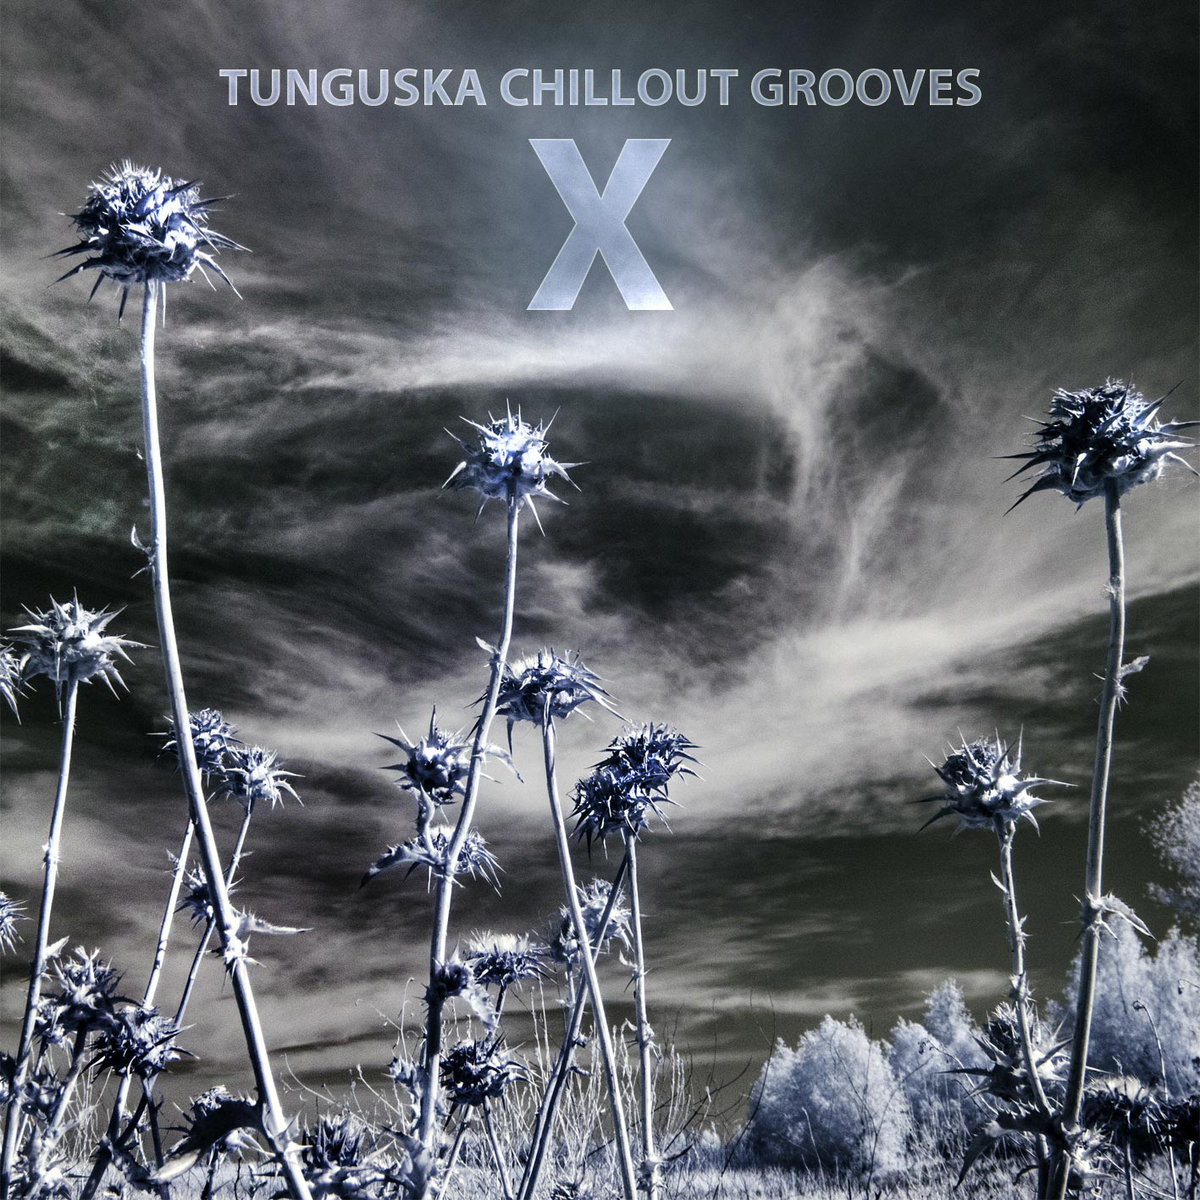 Desperate Mars - Out of Space @ 'Tunguska Chillout Grooves - Volume 10' album (electronic, ambient)